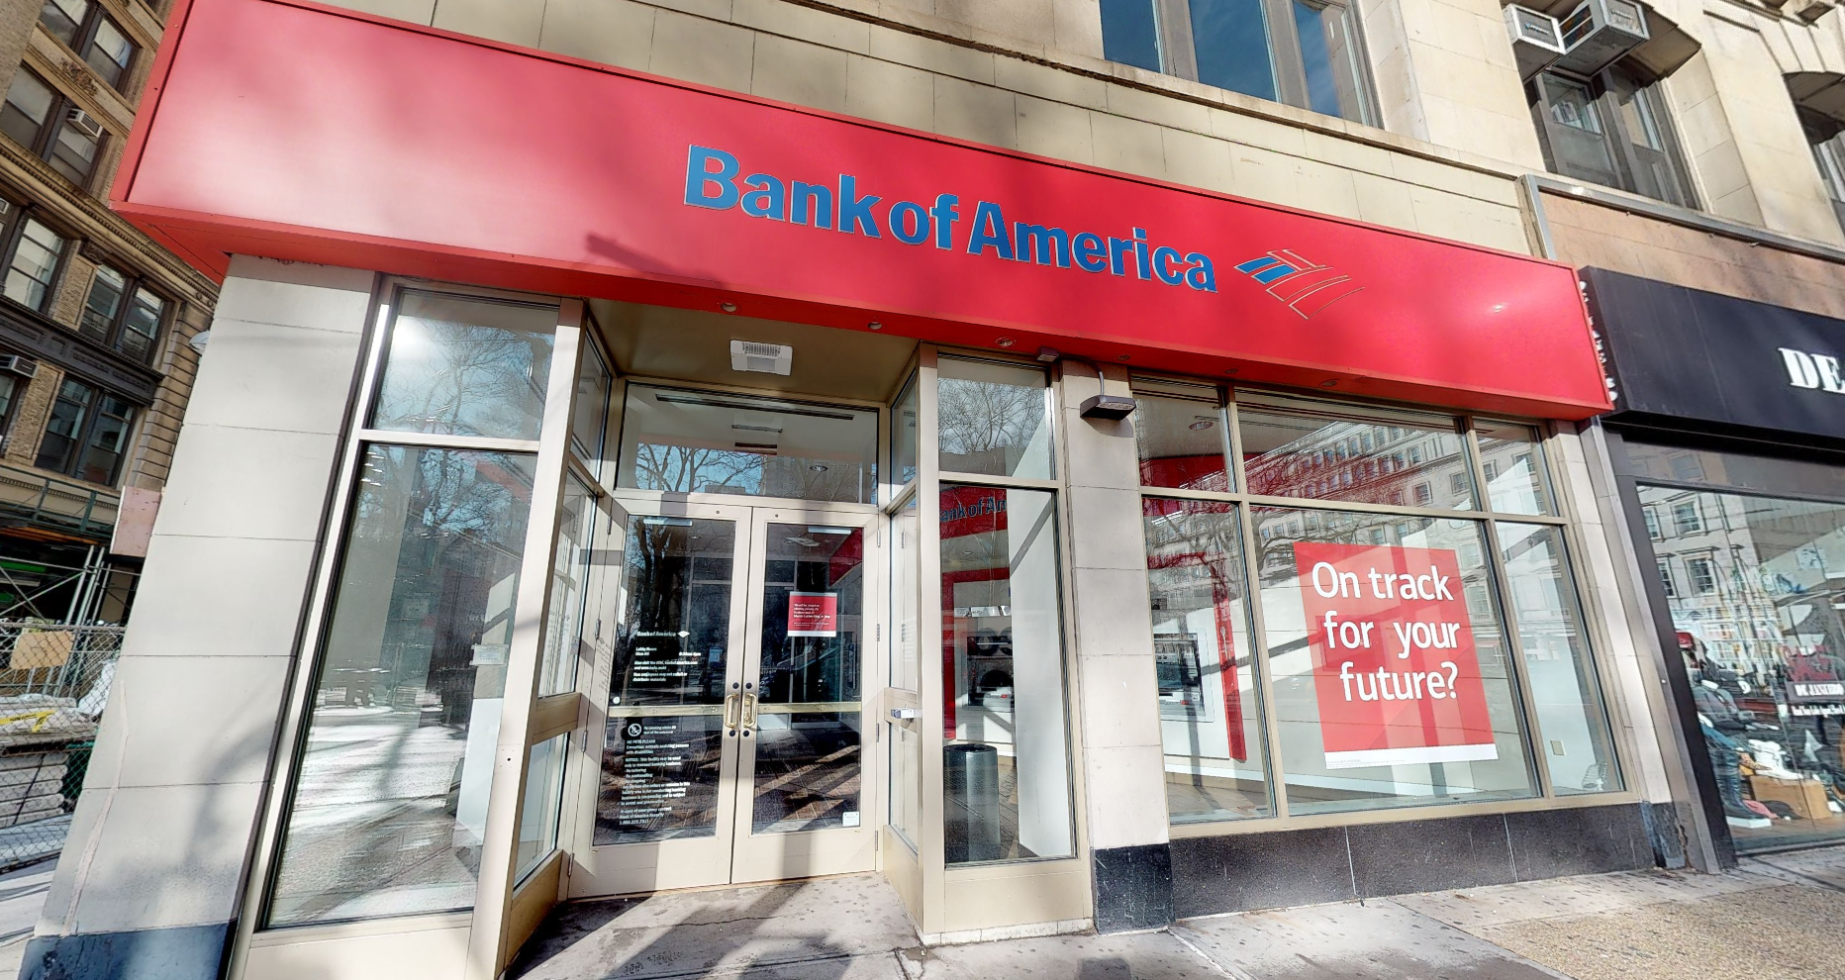 Bank of America financial center with walk-up ATM | 261 Broadway, New York, NY 10007